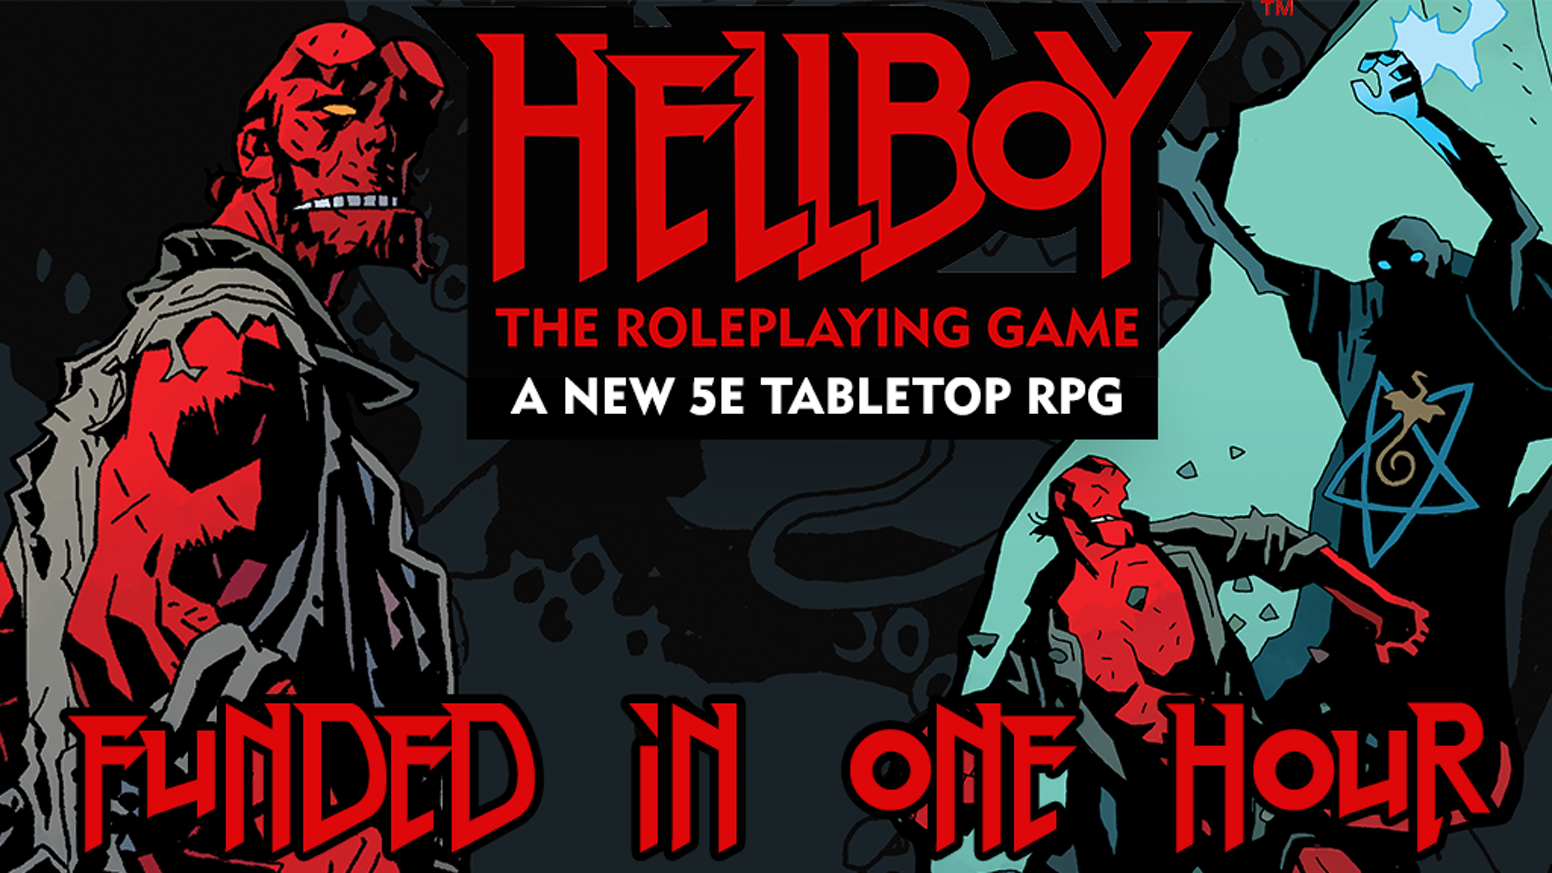 A brand-new Hellboy roleplaying experience, based on the visionary Hellboy graphic novels by Mike Mignola and powered by 5th Edition.